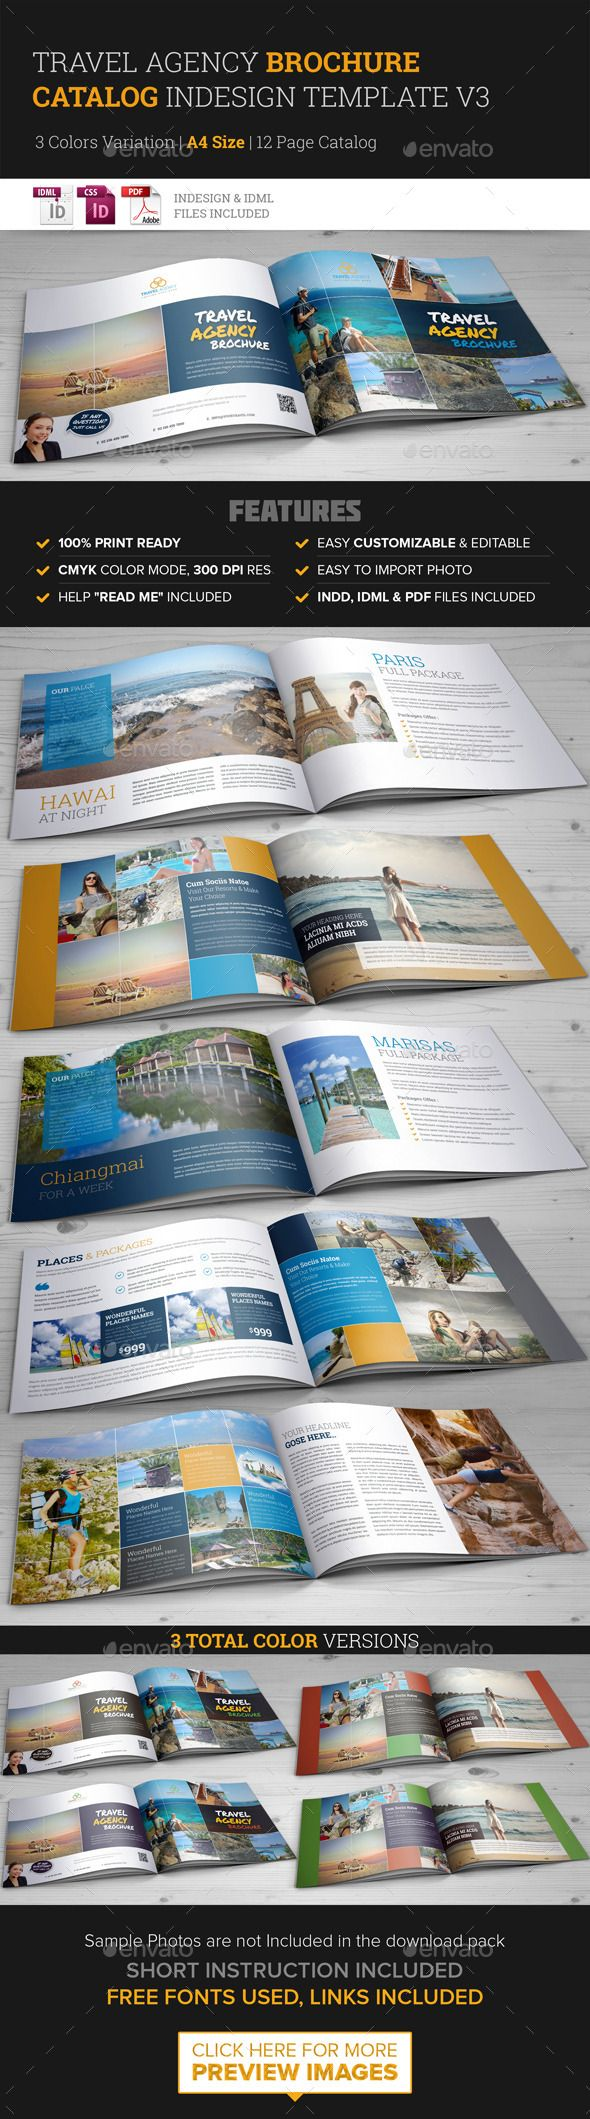 Travel Agency Brochure Catalog Indesign Template #design Download:  Http://graphicriver.